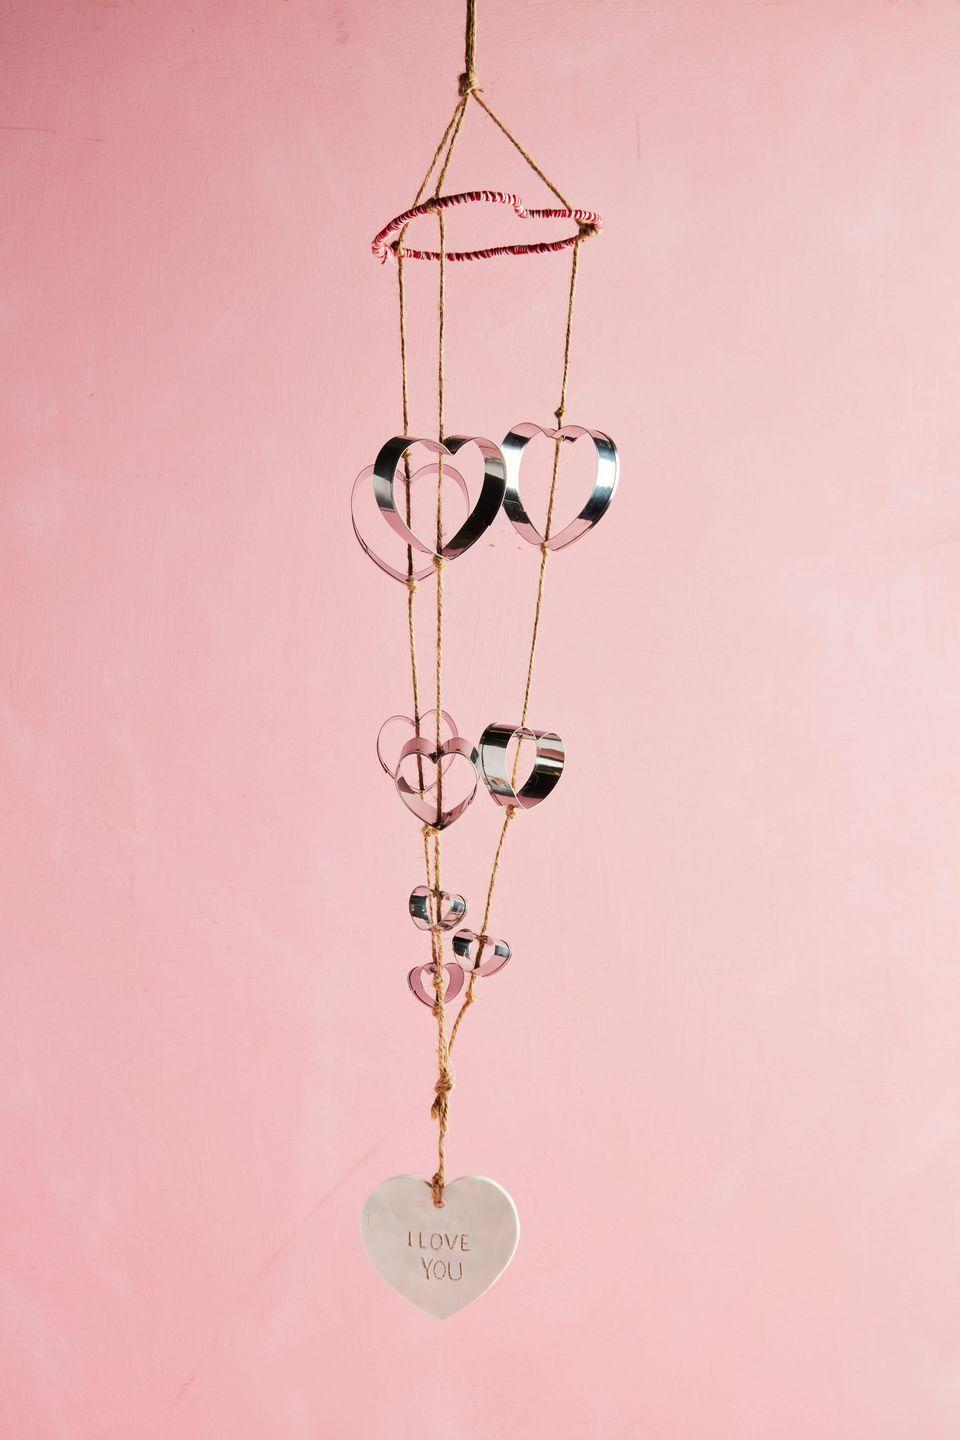 """<p>Transform humble cookie cutters into cheery wind chimes that are ideal for hanging above a bed or on the front porch.<strong><br></strong></p><p><strong>To make:</strong> Fashion a 10- to 12-inch length of wire into a heart shape; wrap with red twine, set aside. Make a clay heart with <a href=""""https://www.amazon.com/POZEAN-Modeling-Sculpting-Accessories-Beginners/dp/B07XXWXBDP/ref=sr_1_1_sspa"""" rel=""""nofollow noopener"""" target=""""_blank"""" data-ylk=""""slk:oven-baked modeling clay"""" class=""""link rapid-noclick-resp"""">oven-baked modeling clay</a>; punch a hole in the top for hanging and write a phrase (if desired) before baking, and set aside. Punch holes in the crook and point of 3 large, 3 medium, and 3 small heart-shaped cookie cutters. Cut three lengths of twine. Working with one length at a time, thread a large, medium, and small cookie cutter onto twine, knotting above and below each cutter so that it stays in place. Repeat with remaining twine and cookie cutters. Wrap twine lengths (making sure the hearts are facing the correct direction) around wire heart; gather twine lengths at the top and tie in a knot for hanging. Knot twine lengths at the bottom and trim. Thread a short length of twine through the ceramic heart and tie to knot at the bottom of the wine chime, and hang.</p><p><a class=""""link rapid-noclick-resp"""" href=""""https://www.amazon.com/Ann-Clark-Cookie-Cutters-5-Piece/dp/B07ZDHJDKJ/ref=sr_1_4_sspa?tag=syn-yahoo-20&ascsubtag=%5Bartid%7C10050.g.2971%5Bsrc%7Cyahoo-us"""" rel=""""nofollow noopener"""" target=""""_blank"""" data-ylk=""""slk:SHOP COOKIE CUTTERS"""">SHOP COOKIE CUTTERS</a></p>"""